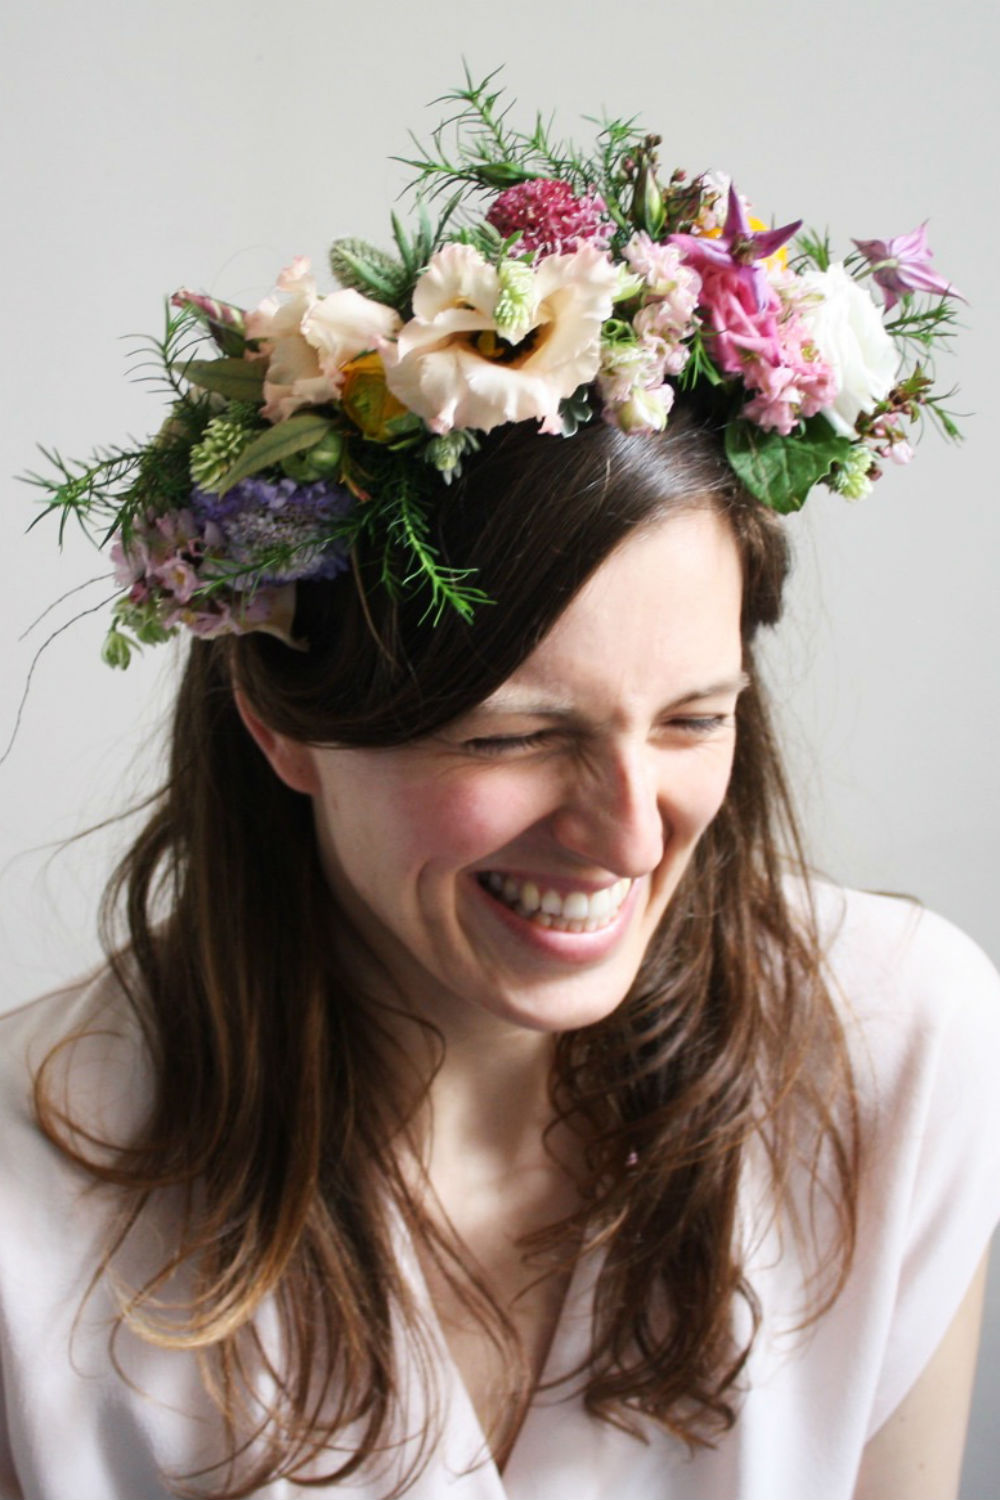 Wedding flowers ideas for your big day a floral crown adds a touch of the festival to your wedding go full floral for winter you could easily izmirmasajfo Images